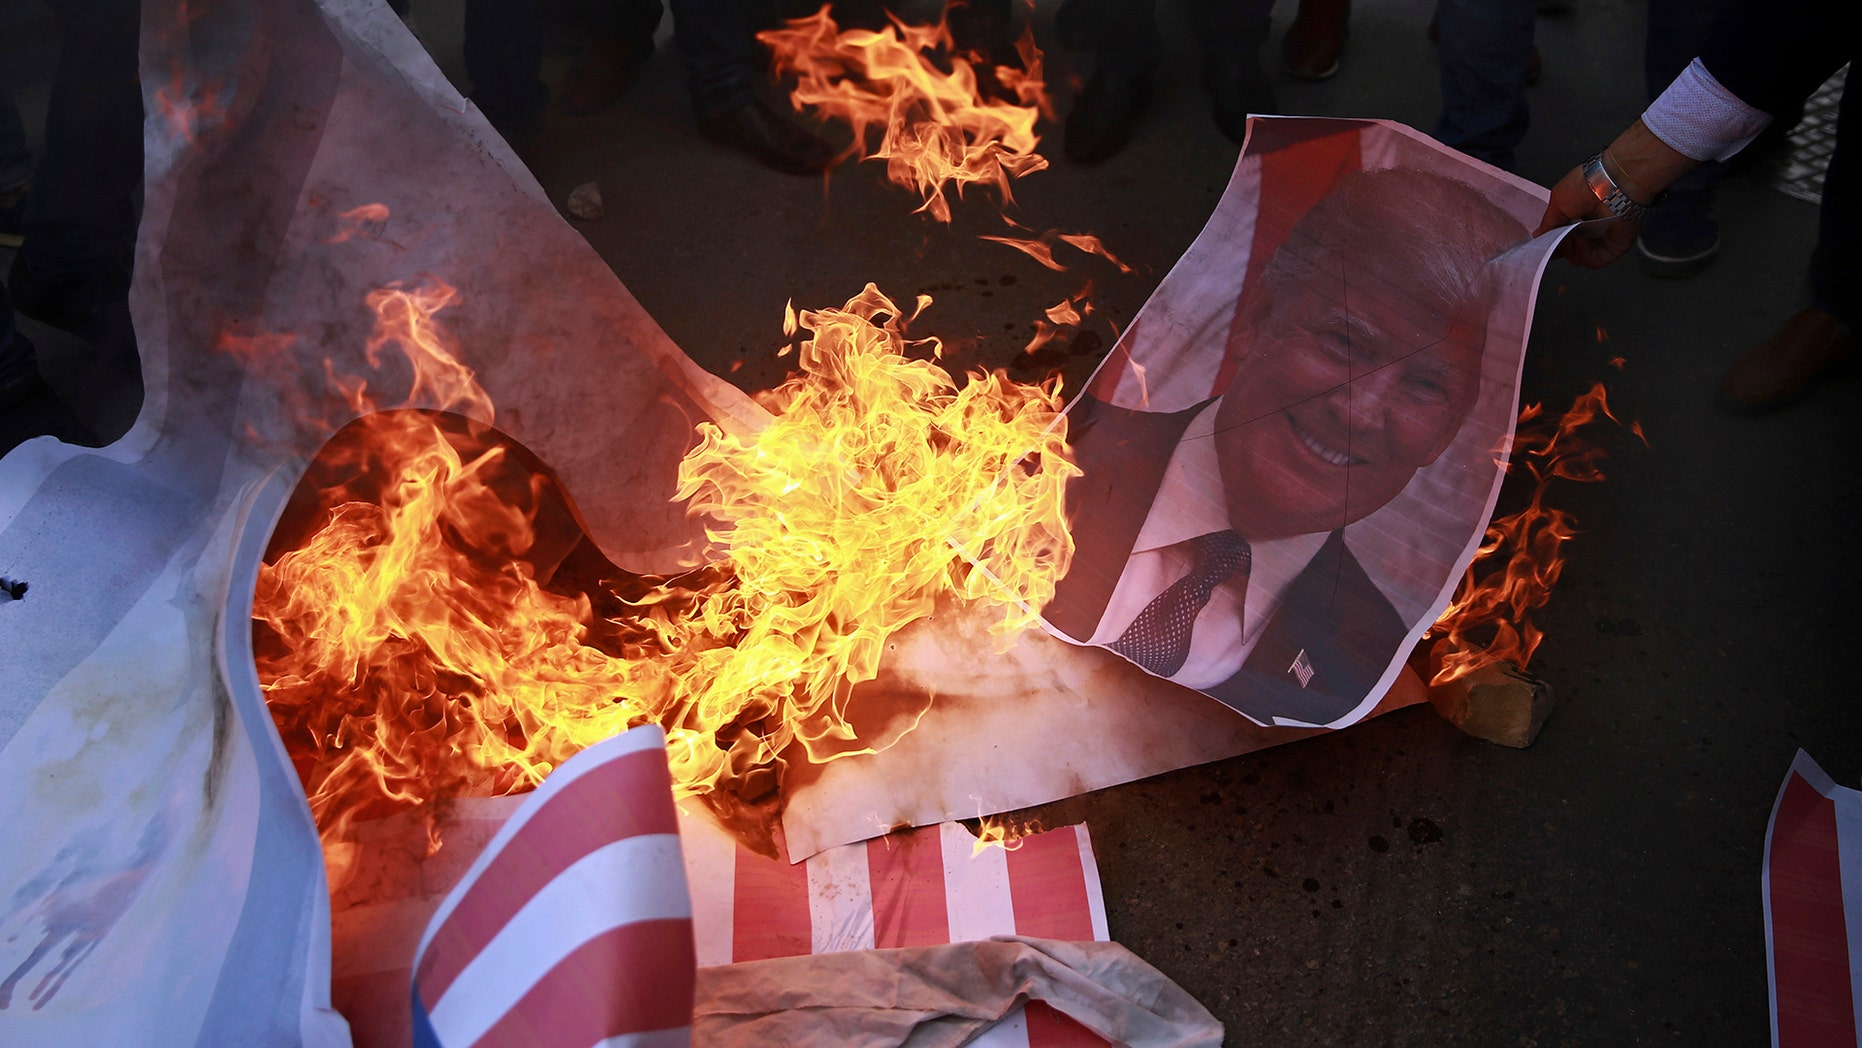 Palestinian protesters burn a poster of PresidentTrump and a representation of an American flag earlier in December.